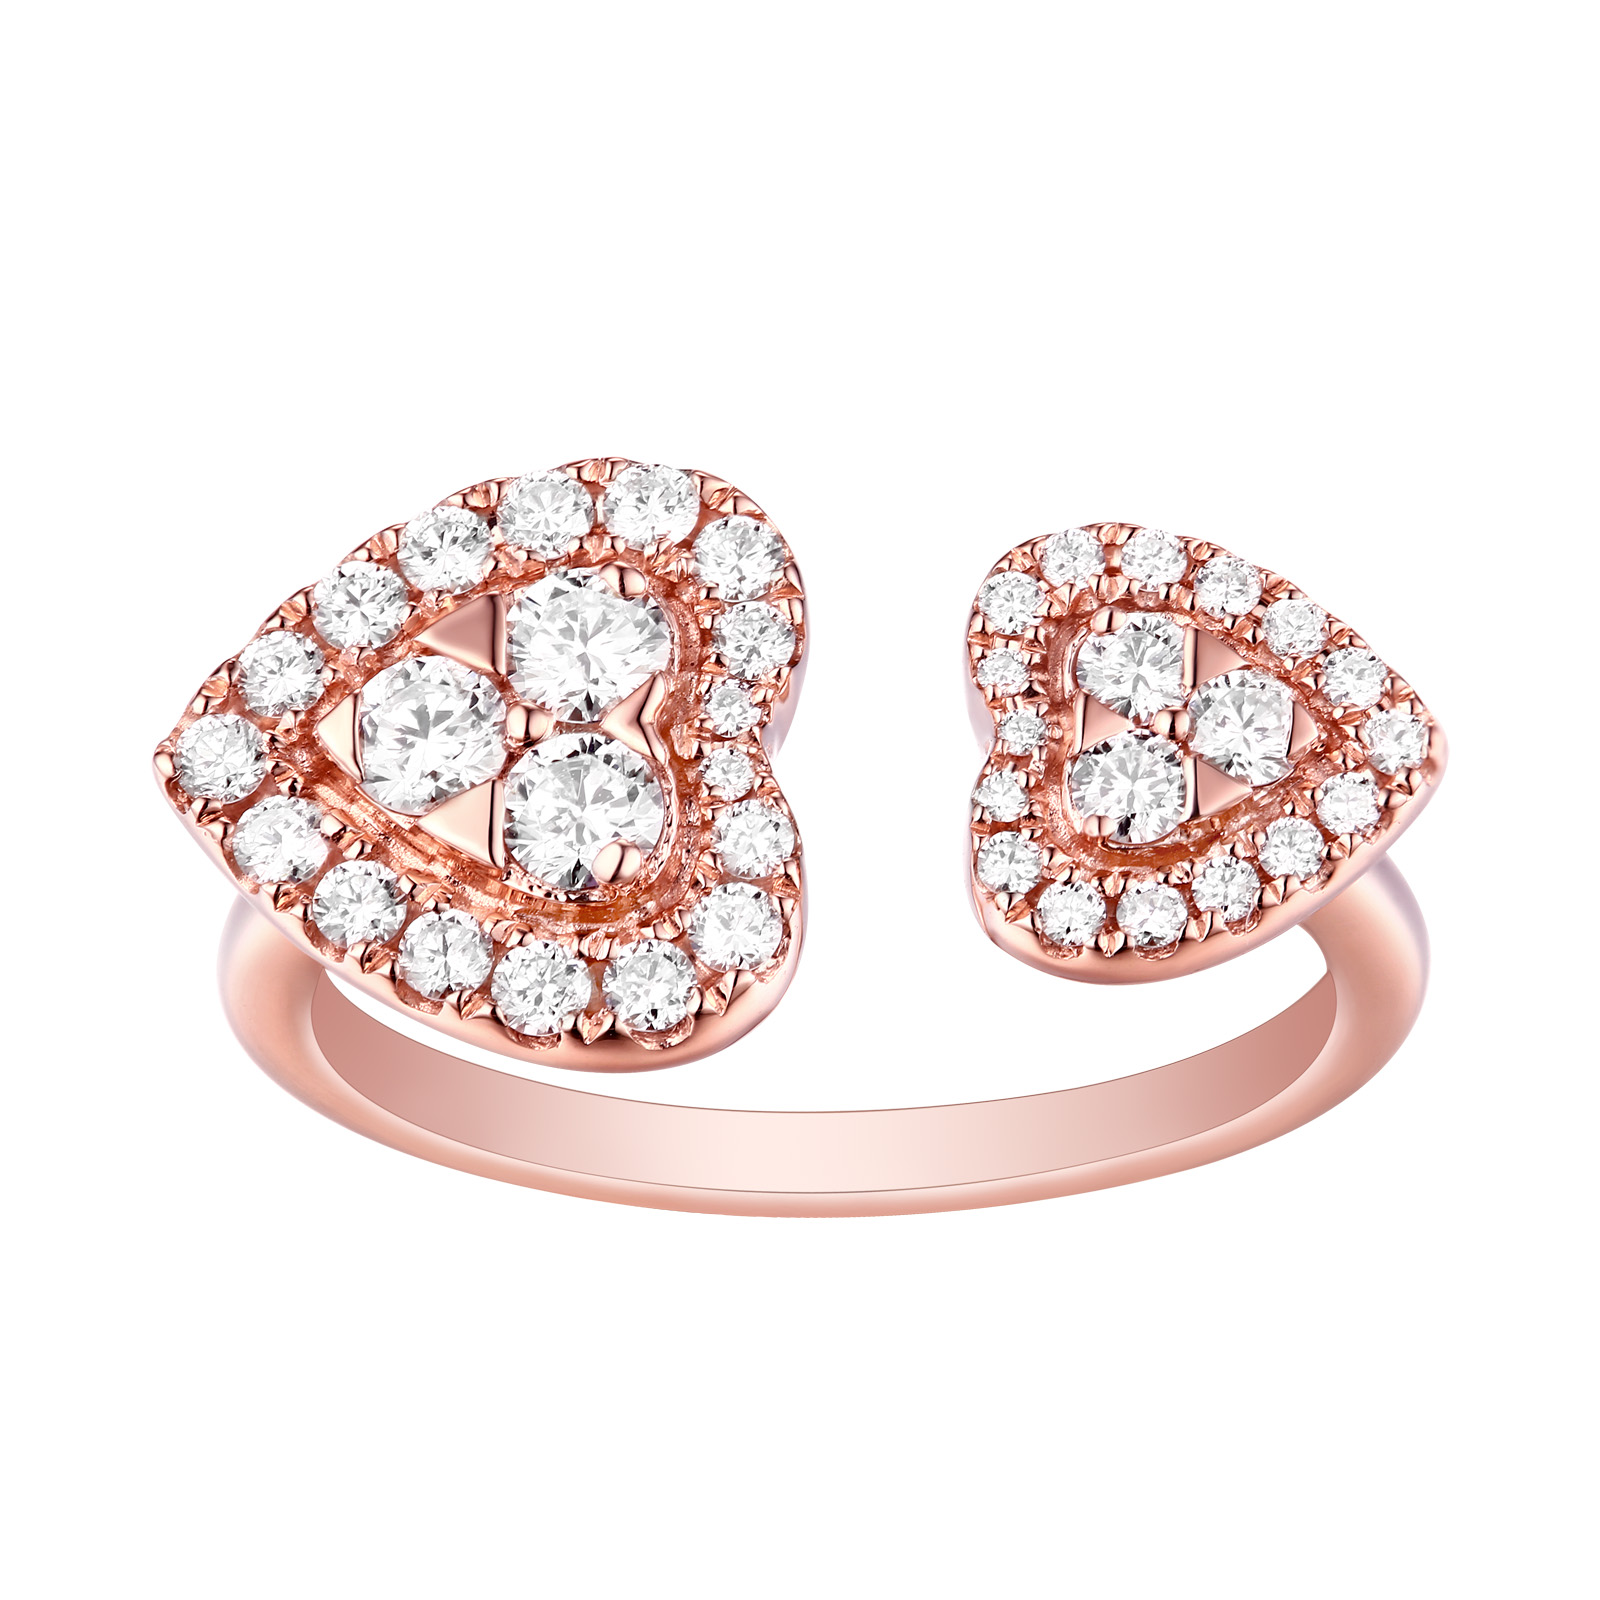 R25527WHT- 14K Rose Gold Diamond Ring, 0.72 TCW